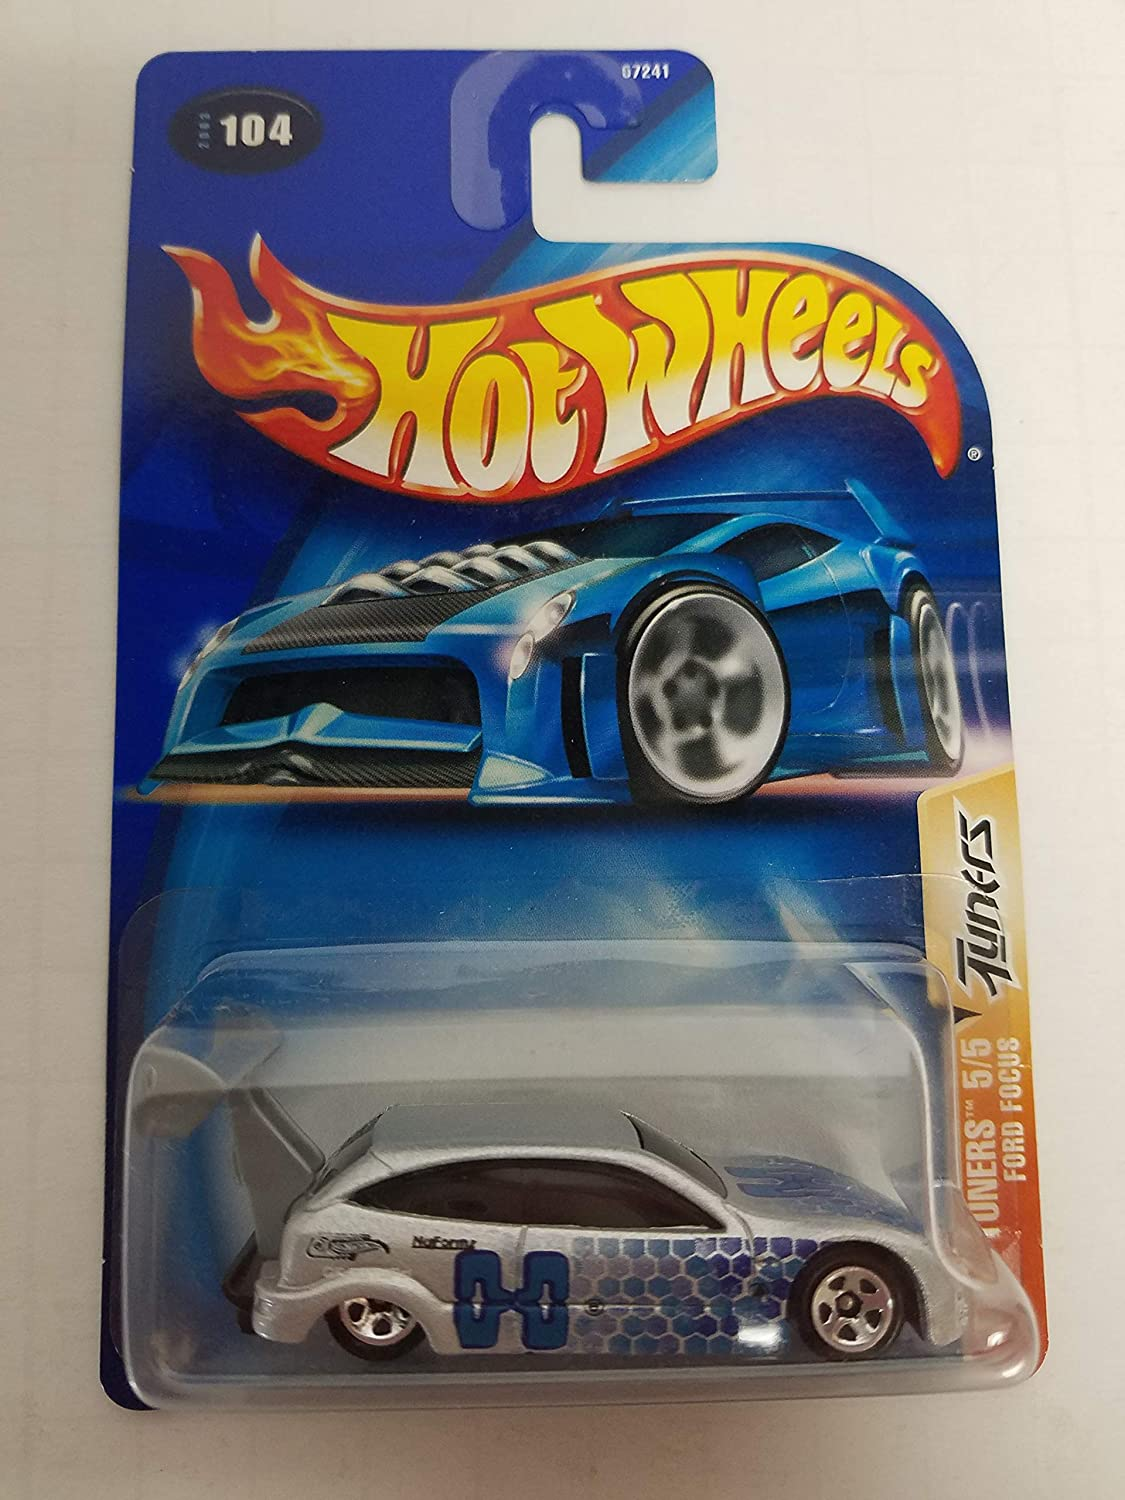 Ford Focus Tech Tuners 5/5 2003 Hot Wheels No. 104